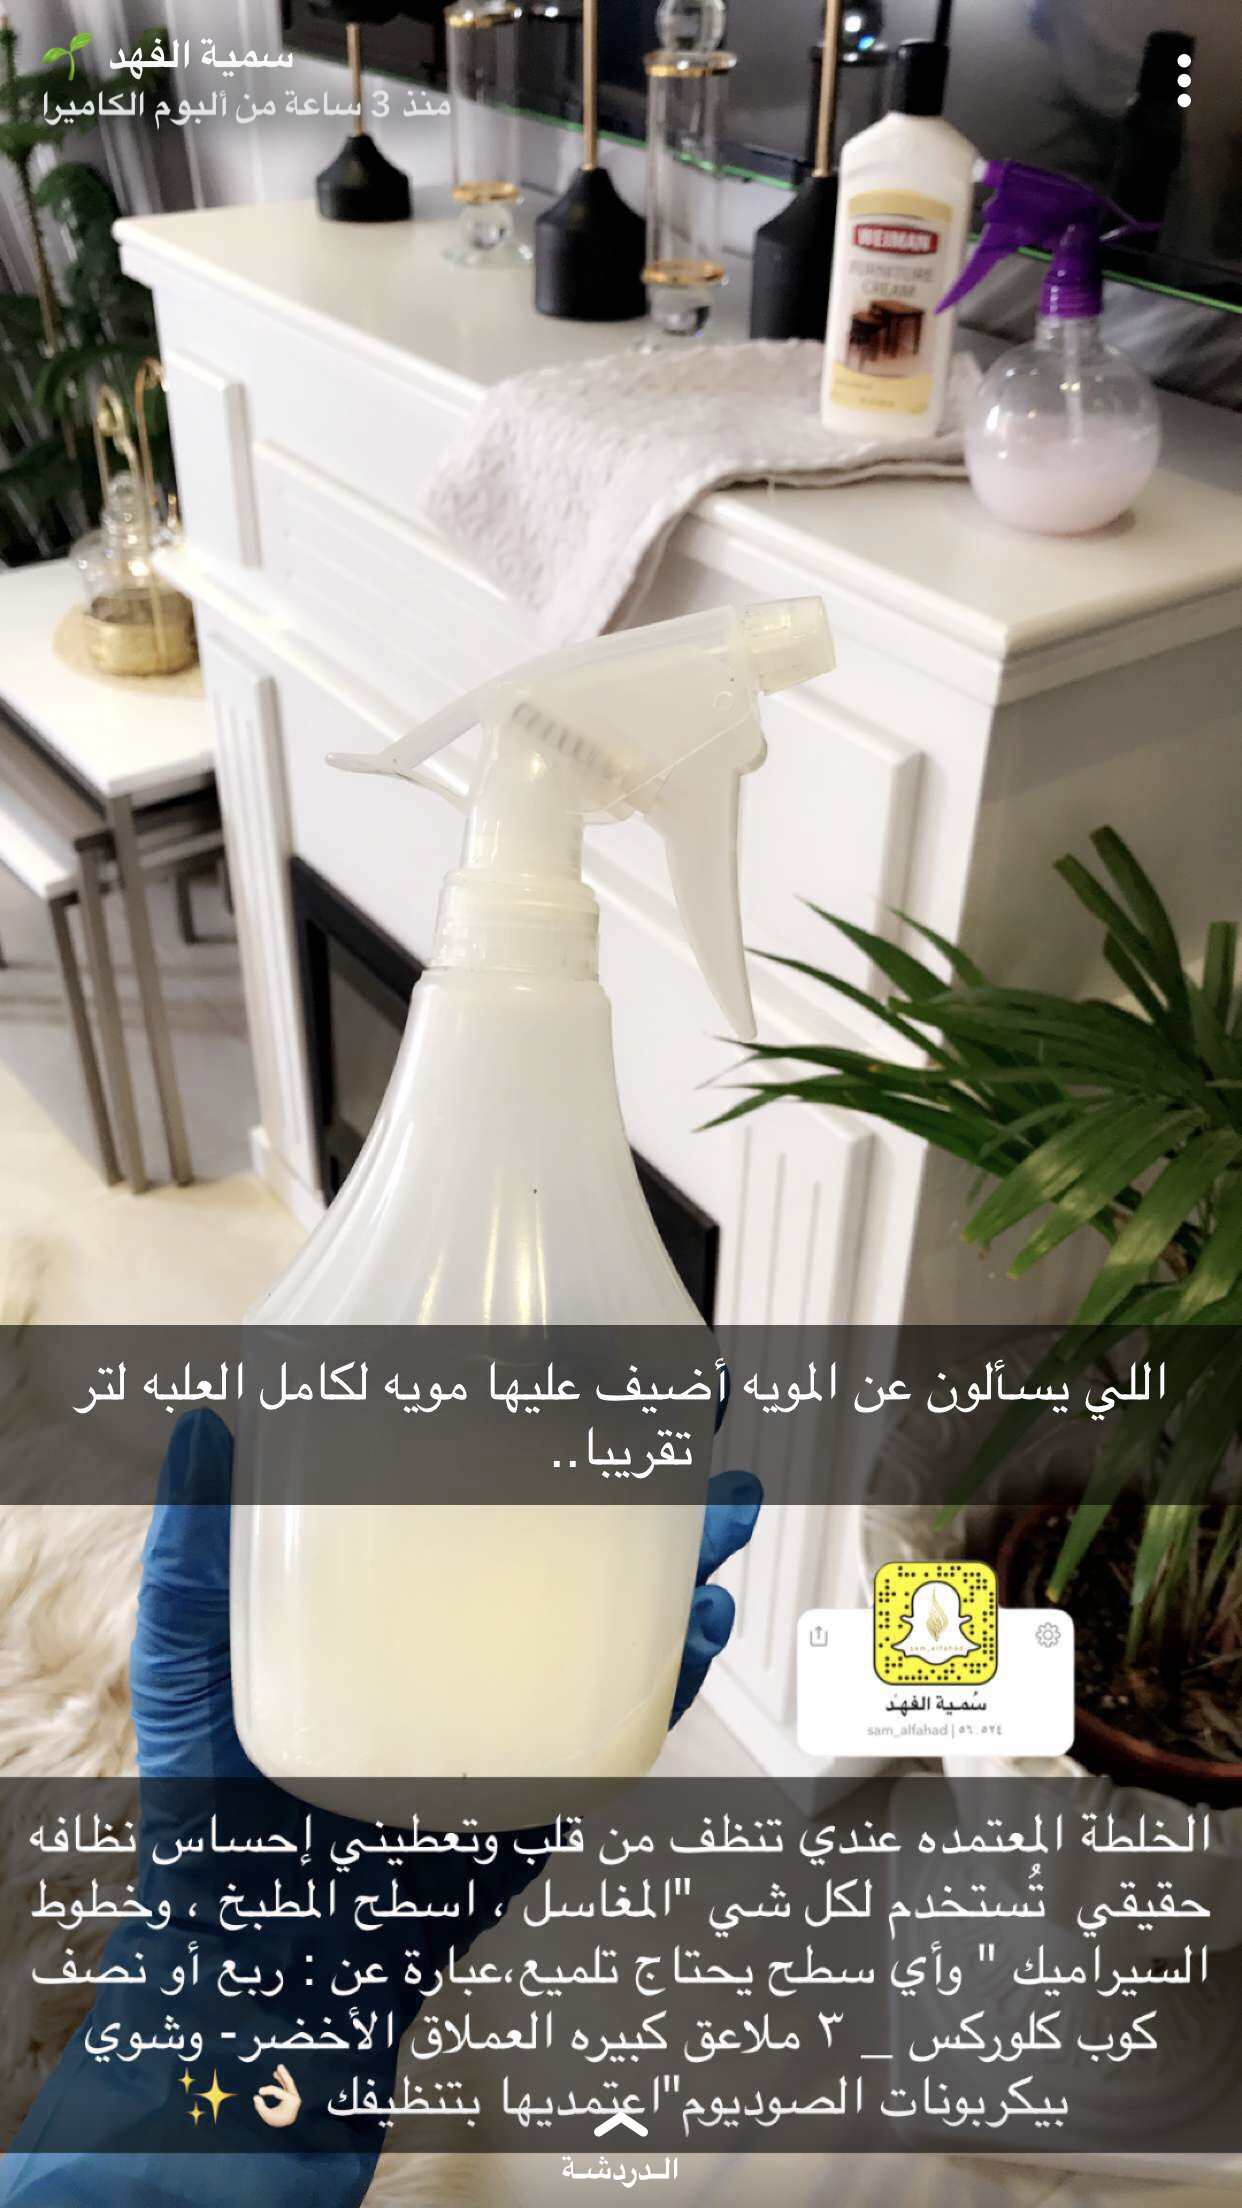 Pin By Jehan On تنظيف وتعطير Homemade Cleaning Solutions House Cleaning Checklist Diy Home Cleaning